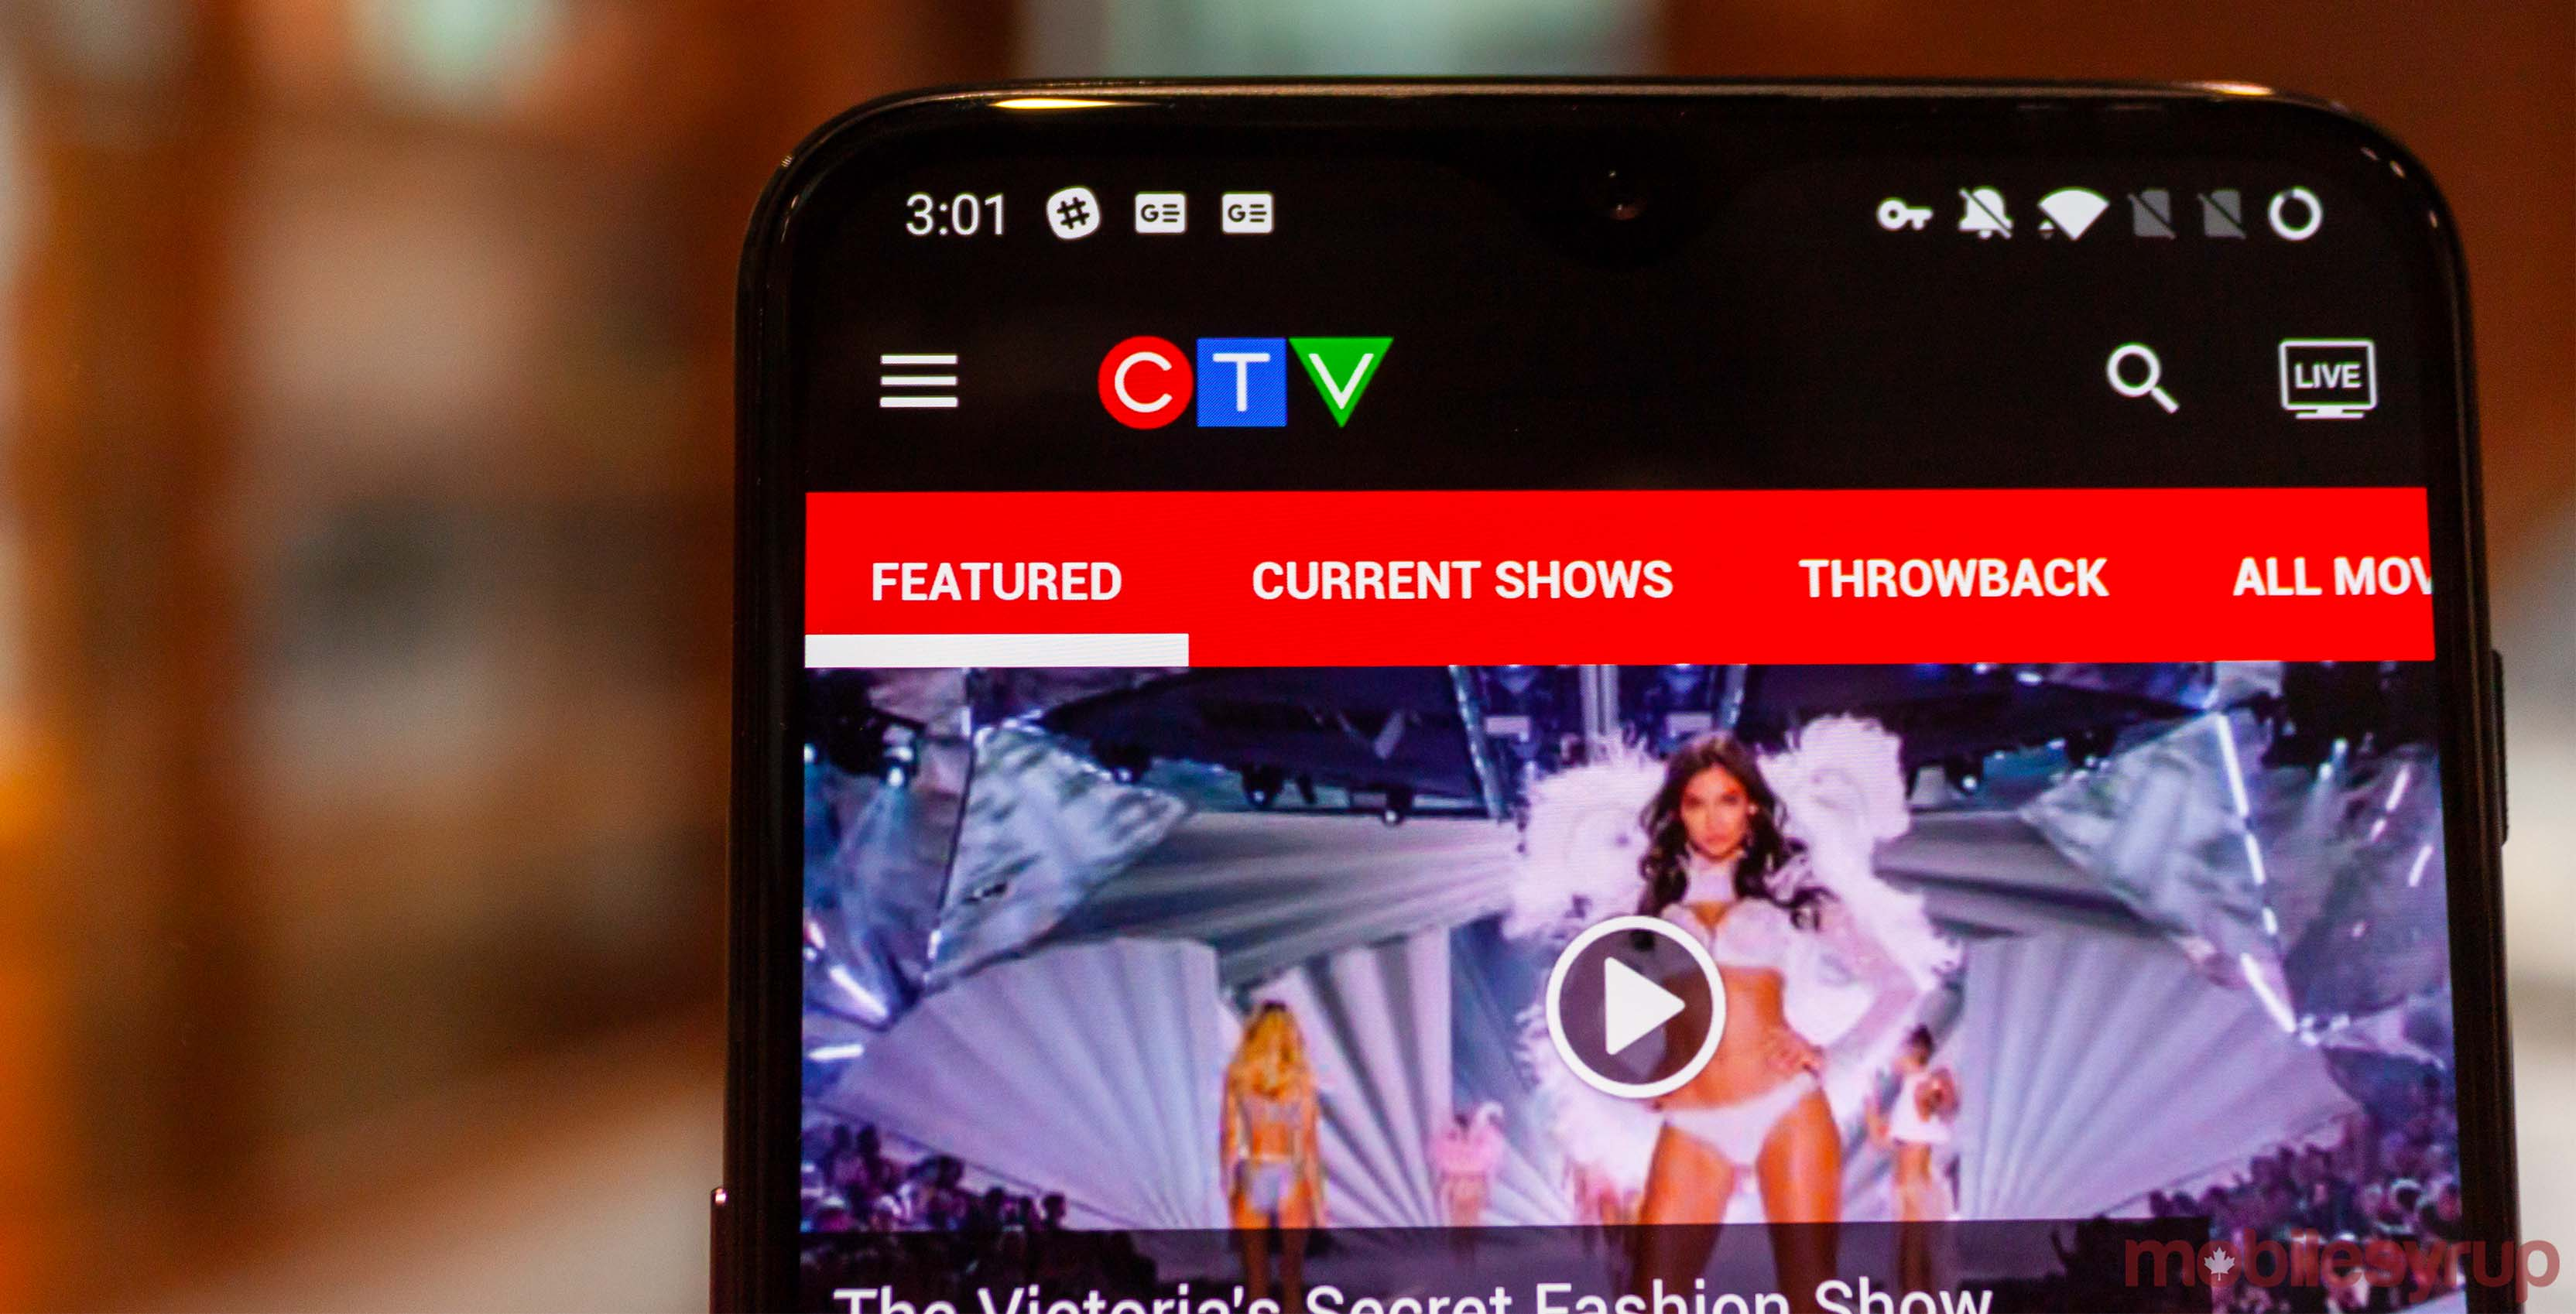 Users furious after Chromecast feature vanishes from CTV app